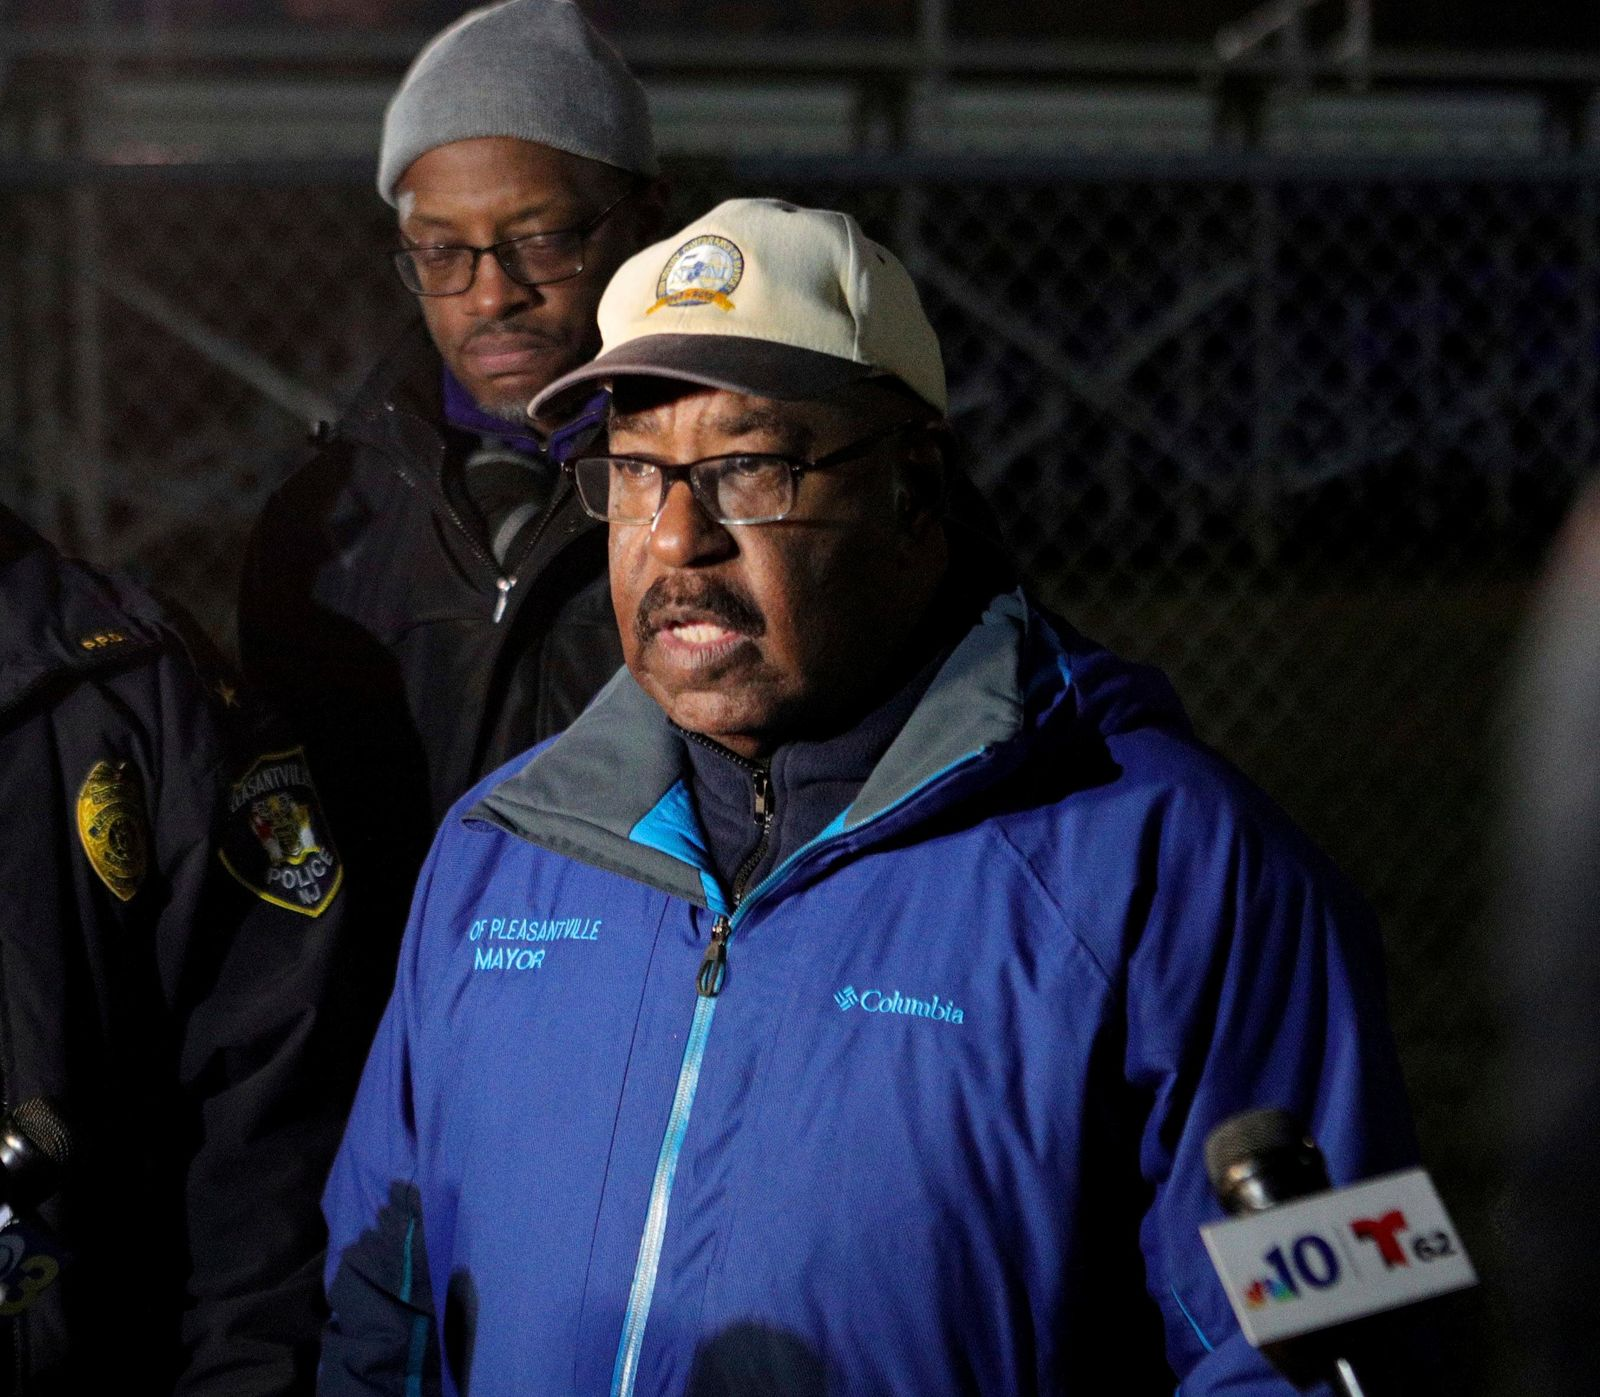 Pleasantville Mayor Jesse L. Tweedle Sr. holds a news conference after a shooting during a football game at Pleasantville High School in Pleasantville, N.J., Friday, Nov. 15, 2019. Players and spectators ran for cover Friday night when a gunman opened fire at the New Jersey high school football game. (Edward Lea/The Press of Atlantic City via AP)